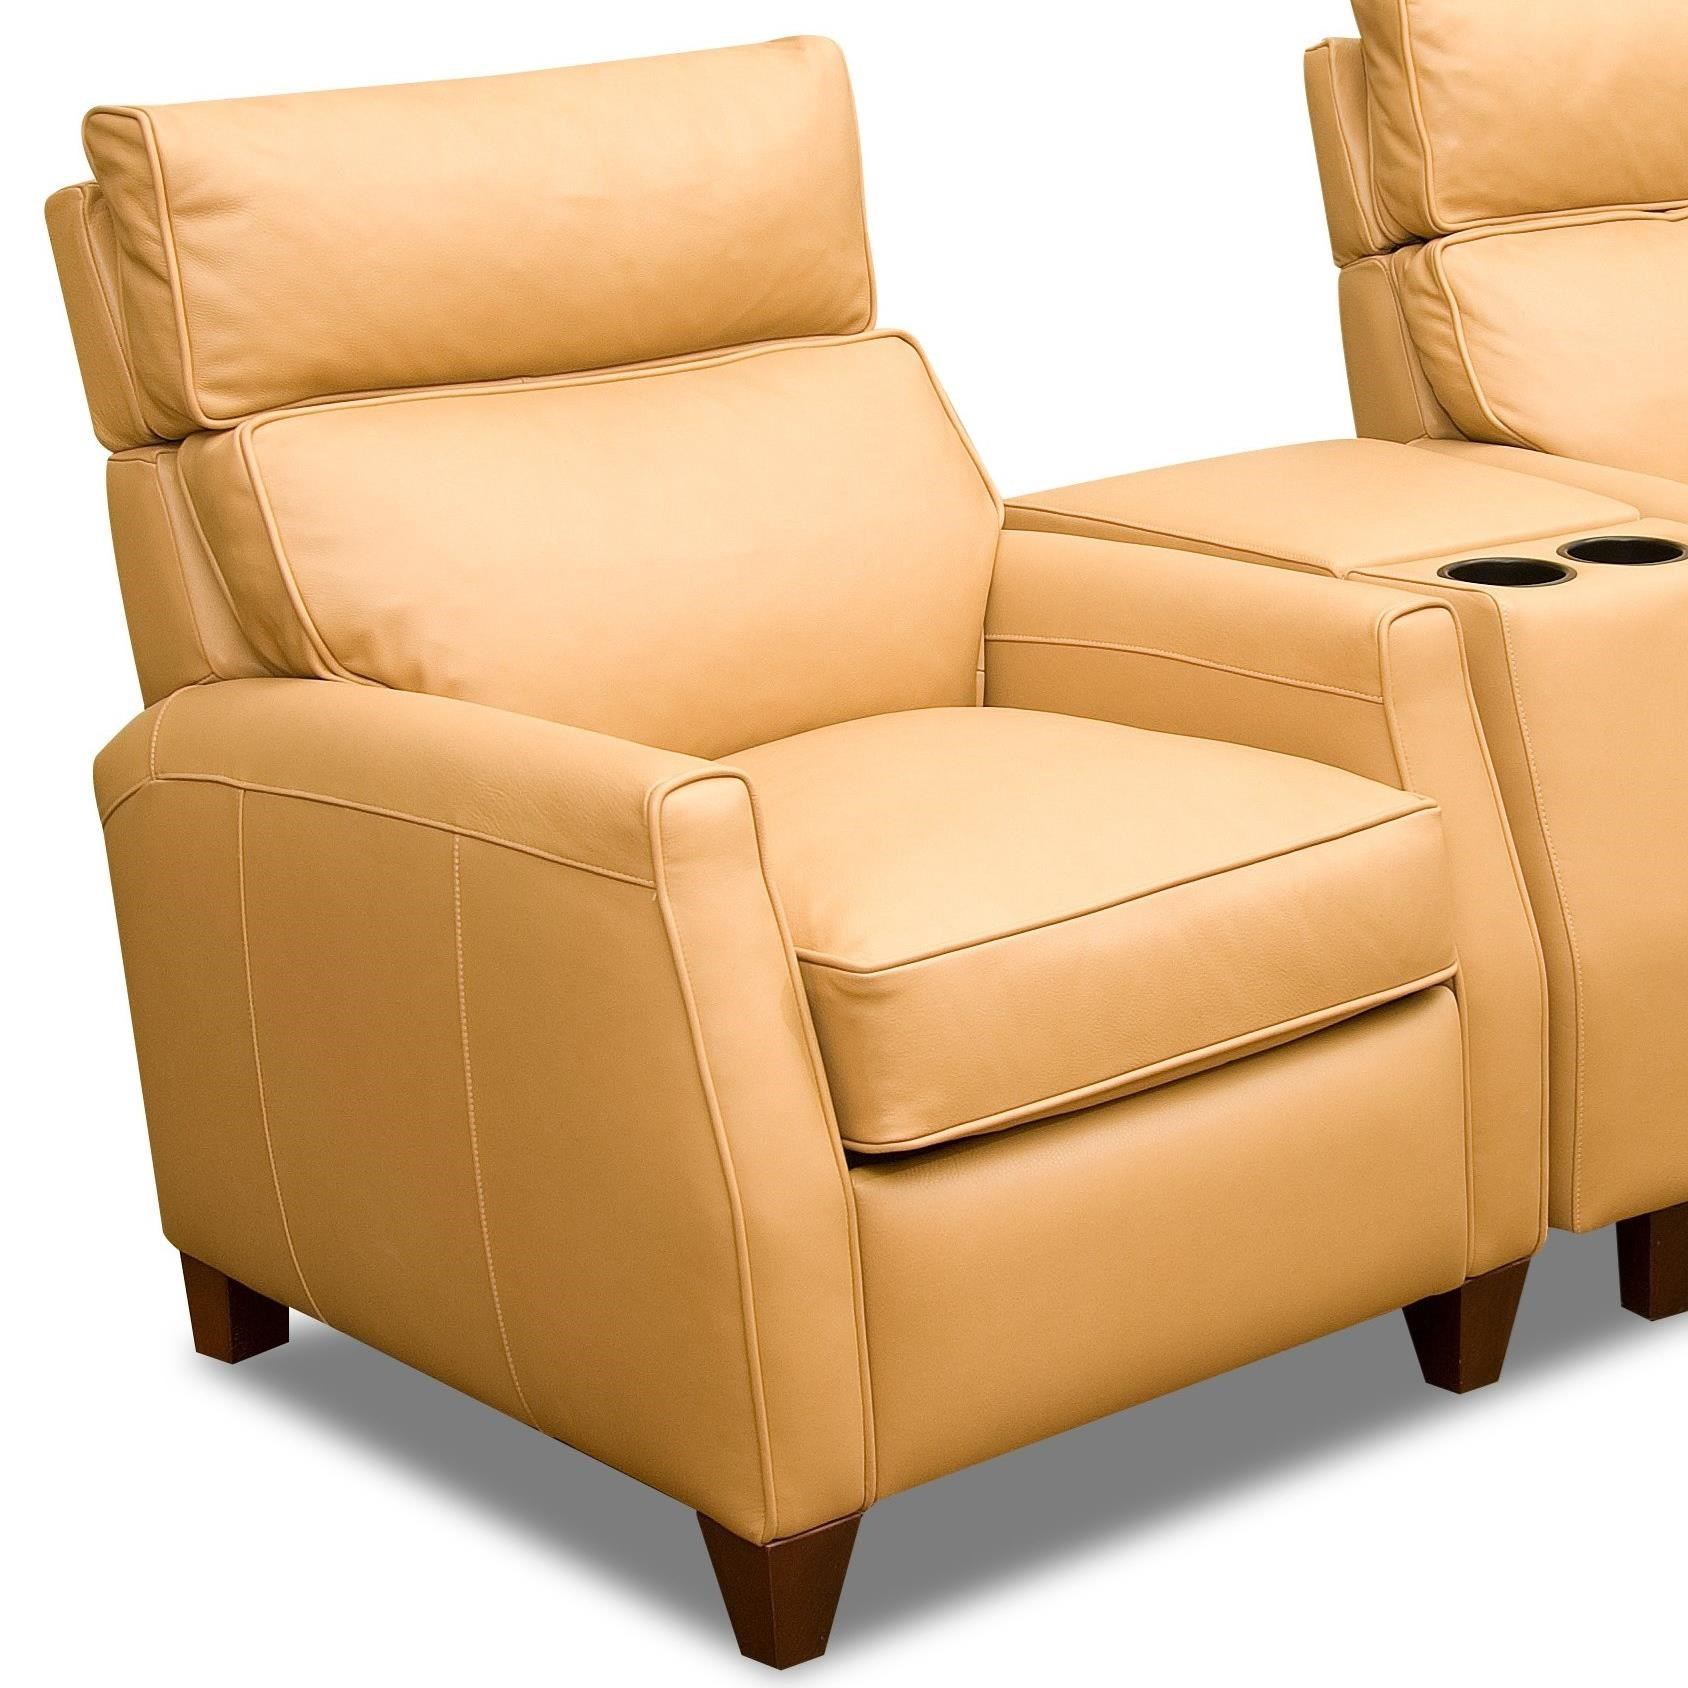 Collins High Leg Recliner by Comfort Design at Lagniappe Home Store